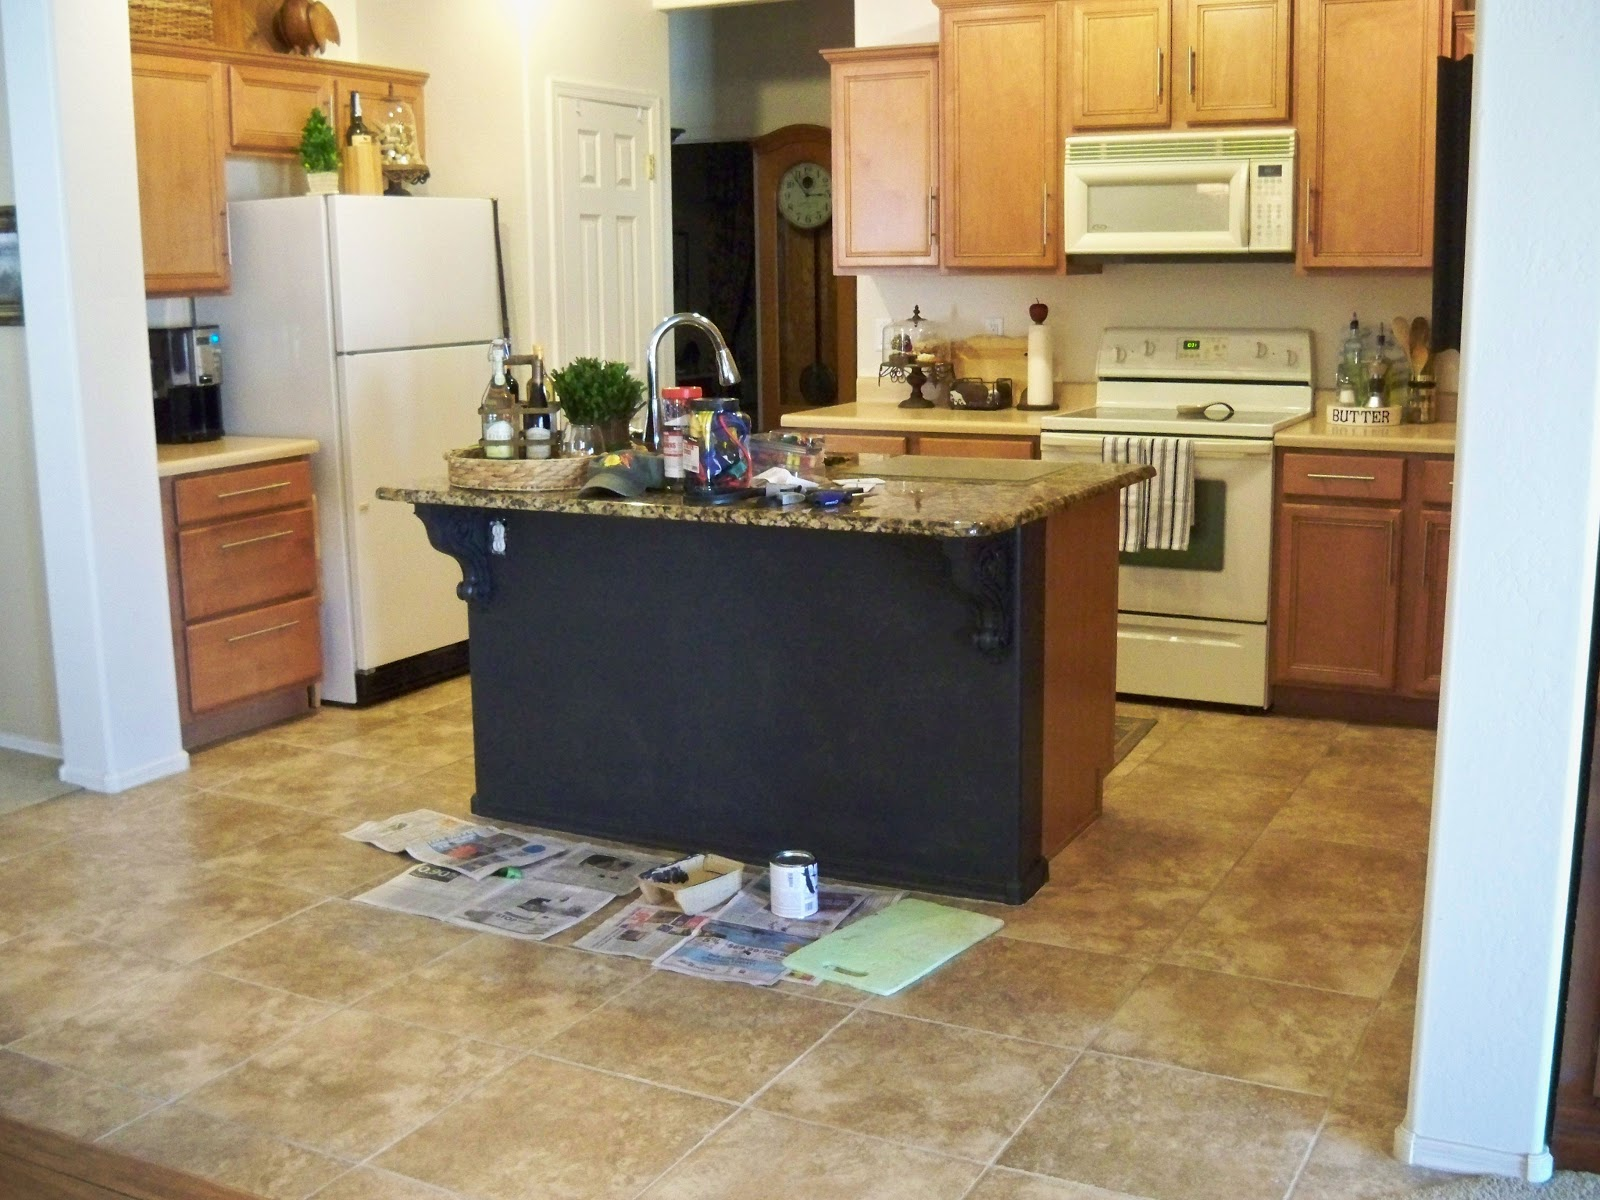 Awesome Painted Kitchen Island Give Me Your Input